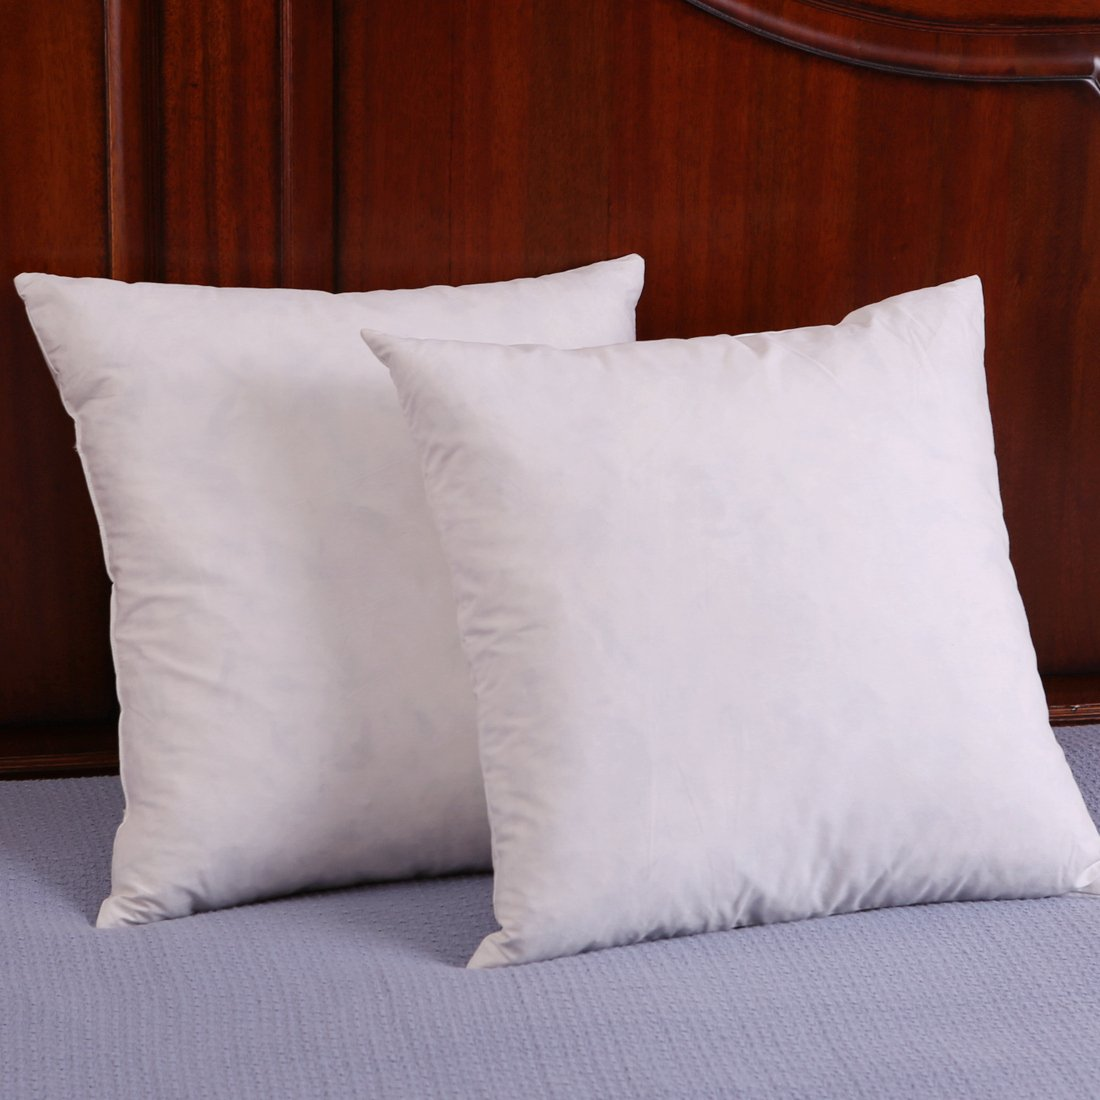 Set of 2, Down and Feather Throw Pillow Insert, Decorative Throw Pillows 601982663223 | eBay